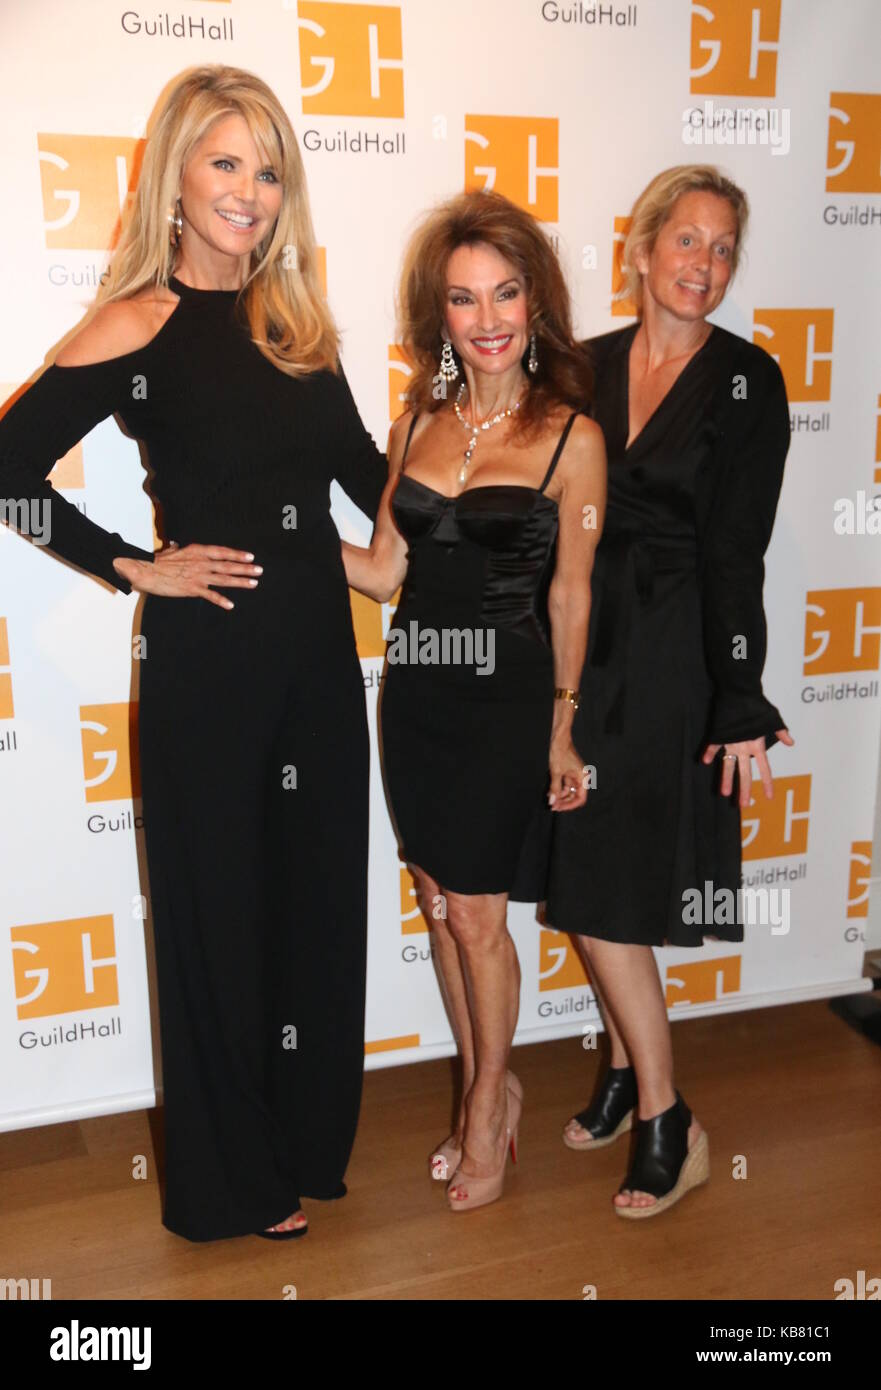 Celebrity Autobiography Guild Hall 2017  Featuring: Christie Brinkley, Susan Lucci, Ali Wentworth Where: East Hampton, - Stock Image